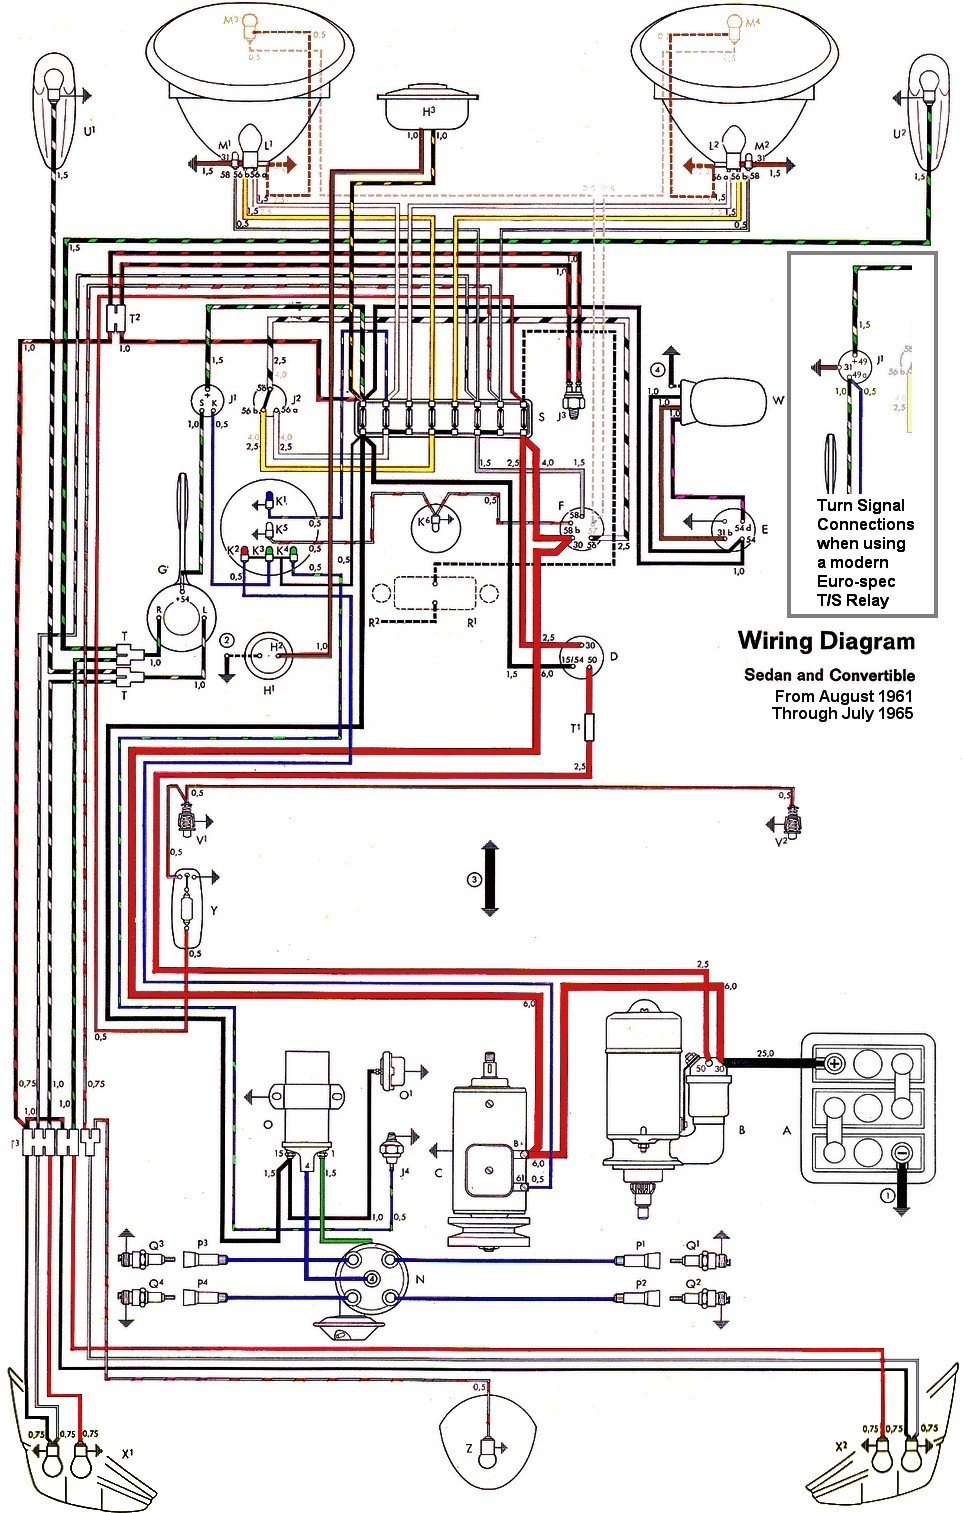 bug_62 65withinset thesamba com type 1 wiring diagrams vw bug wiring diagram at gsmx.co